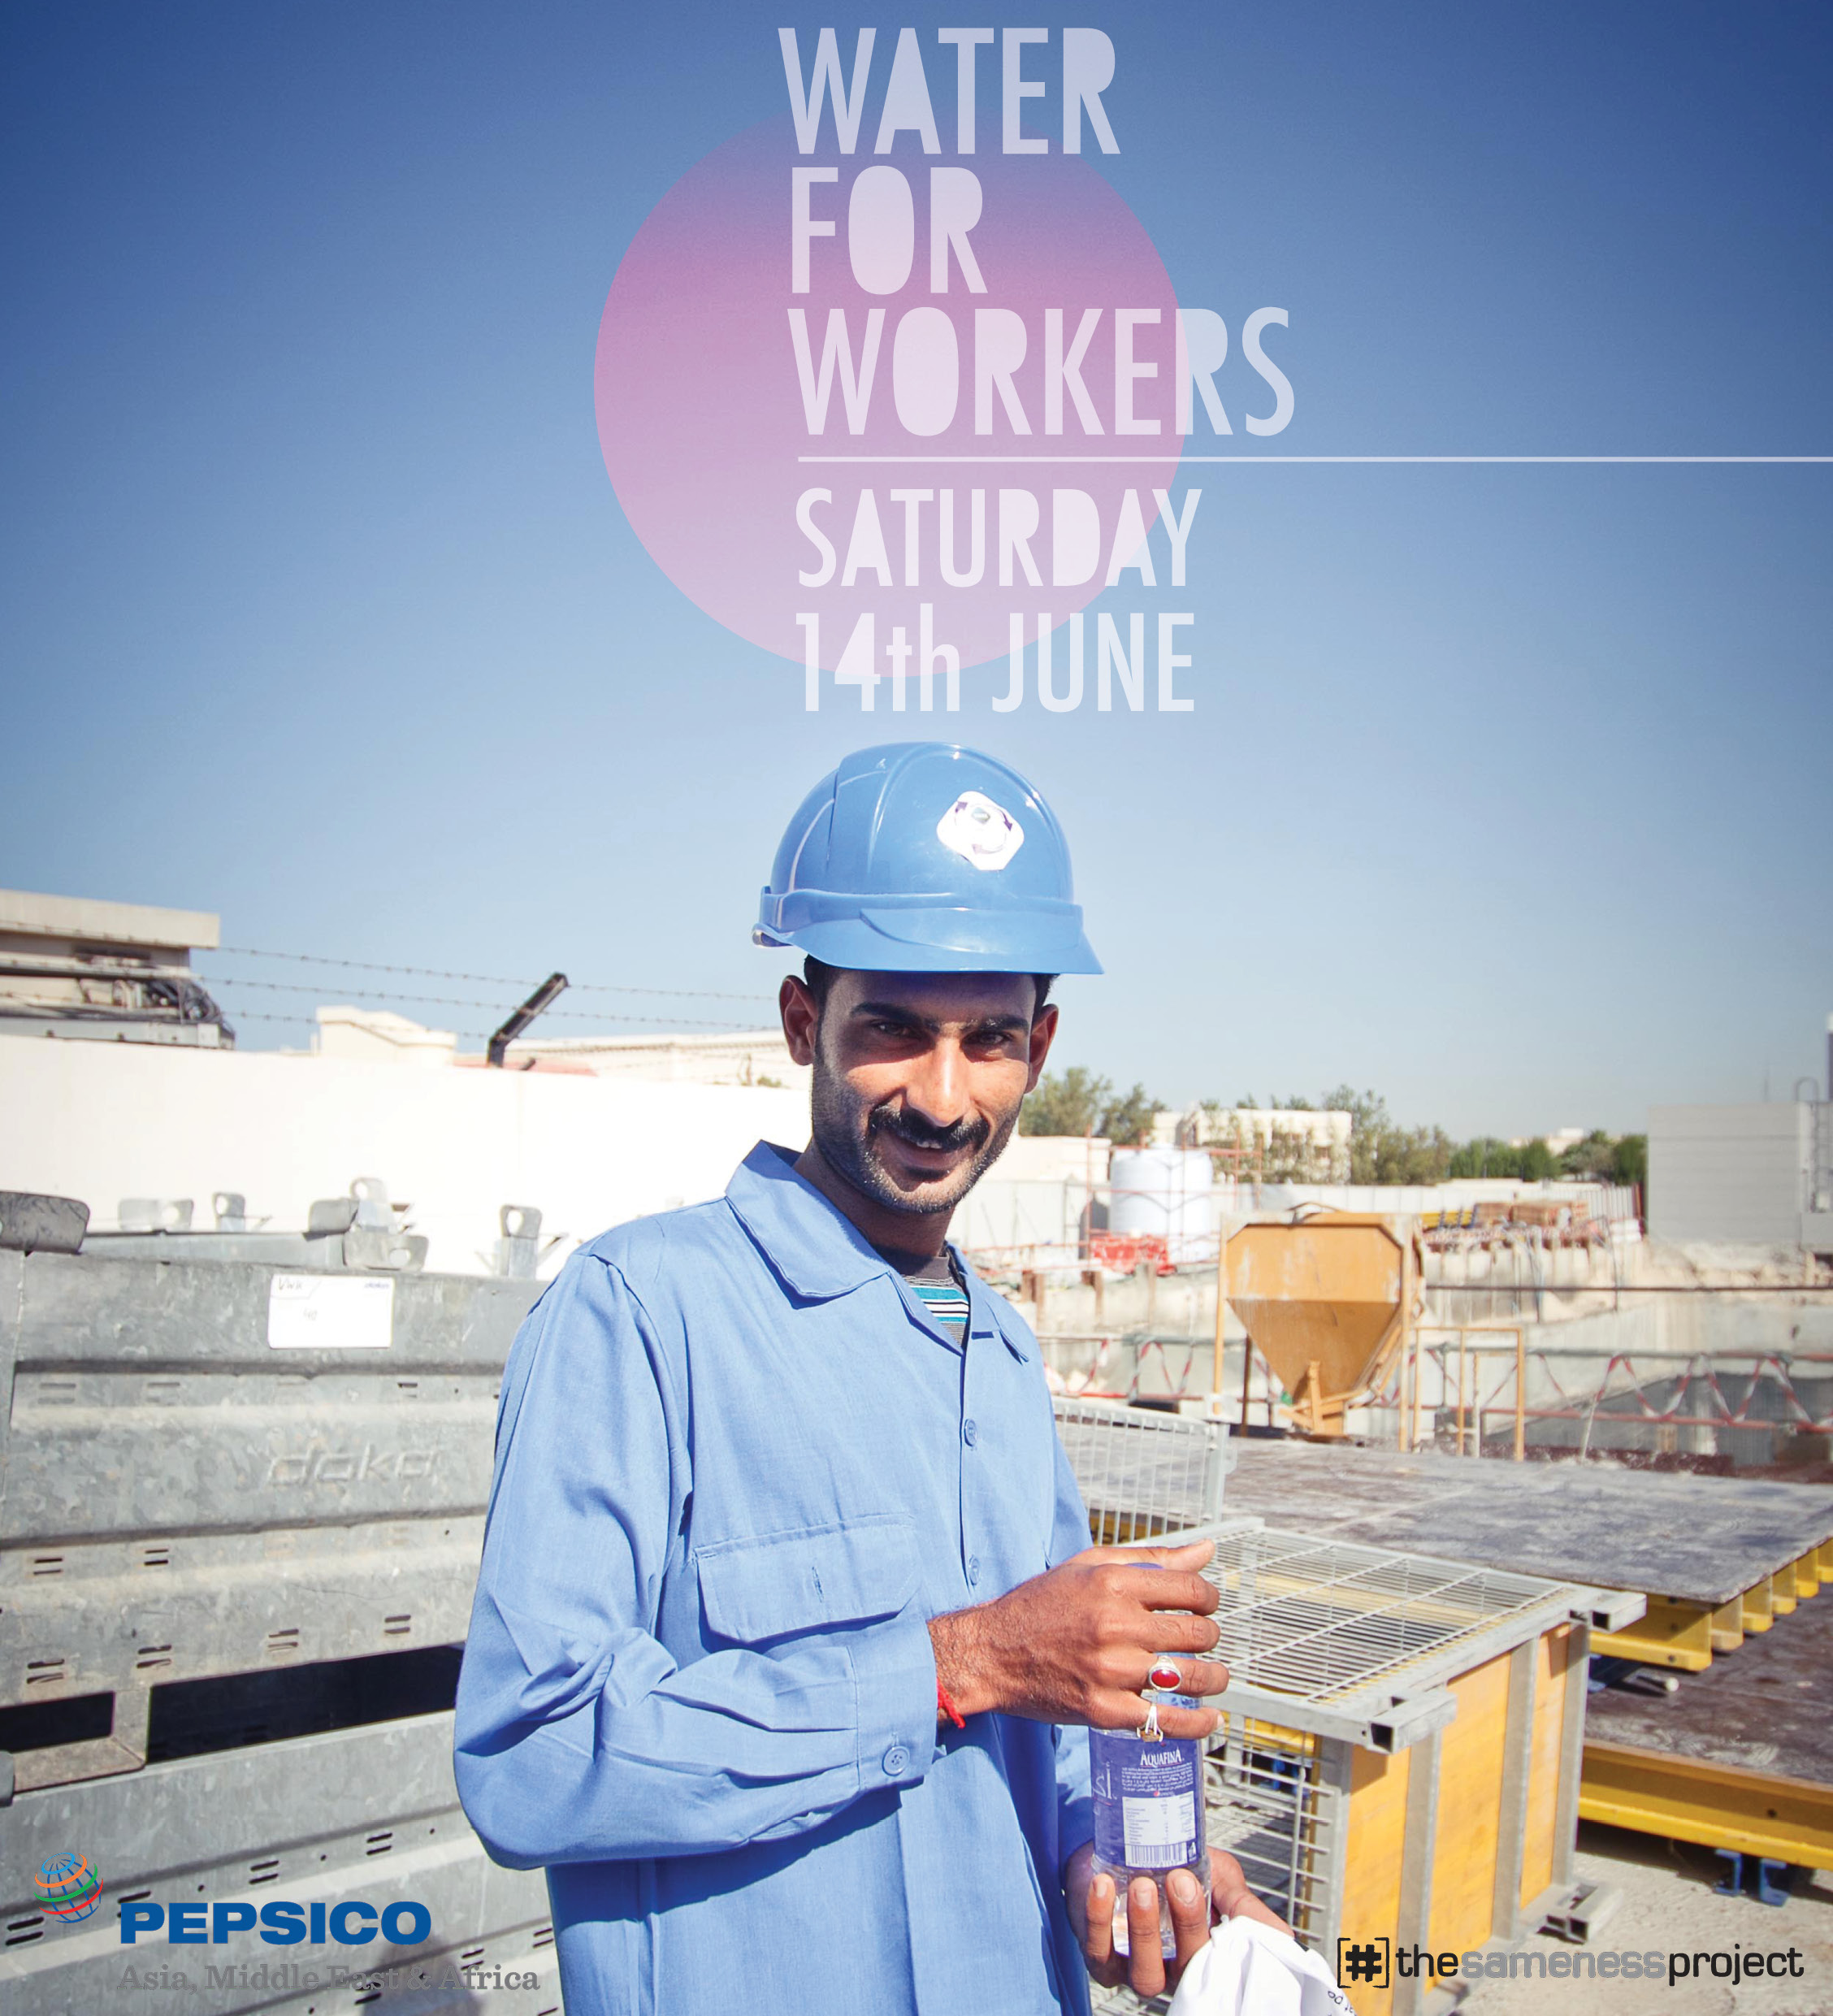 Water for Workers - Saturday 14th June! Get excited as this guy!